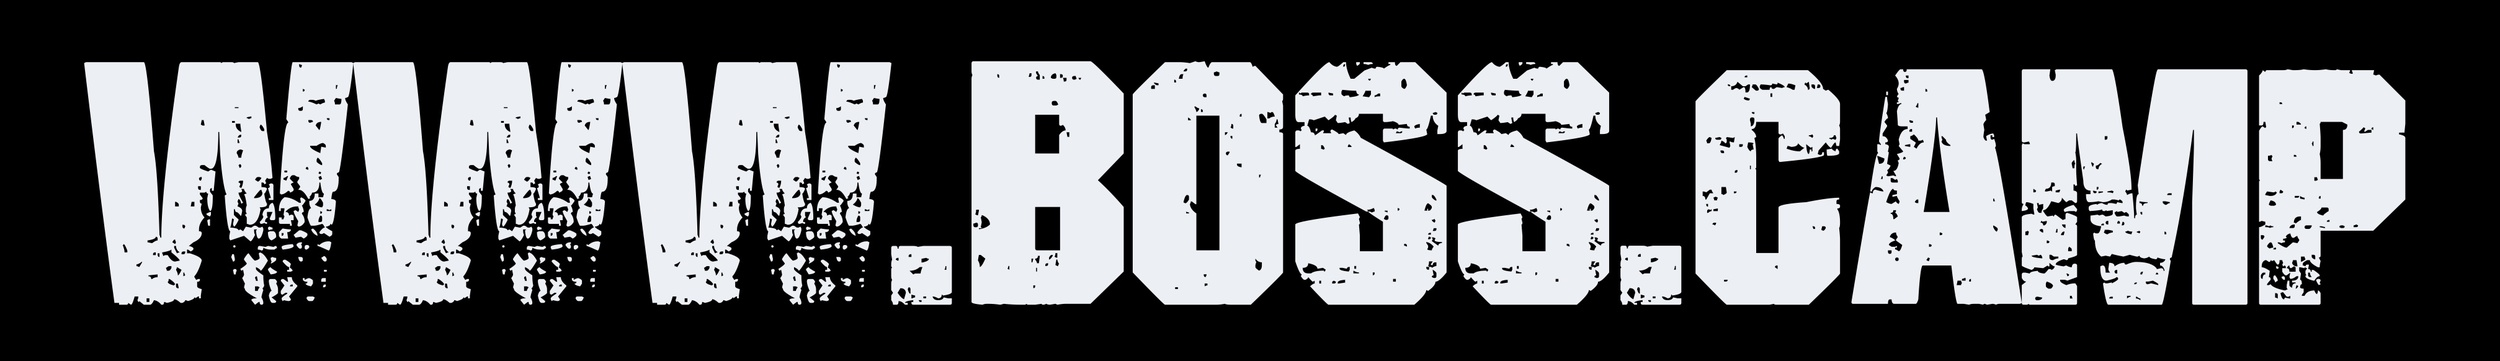 Get better employee performance and make work work with www.boss.camp Jpeg